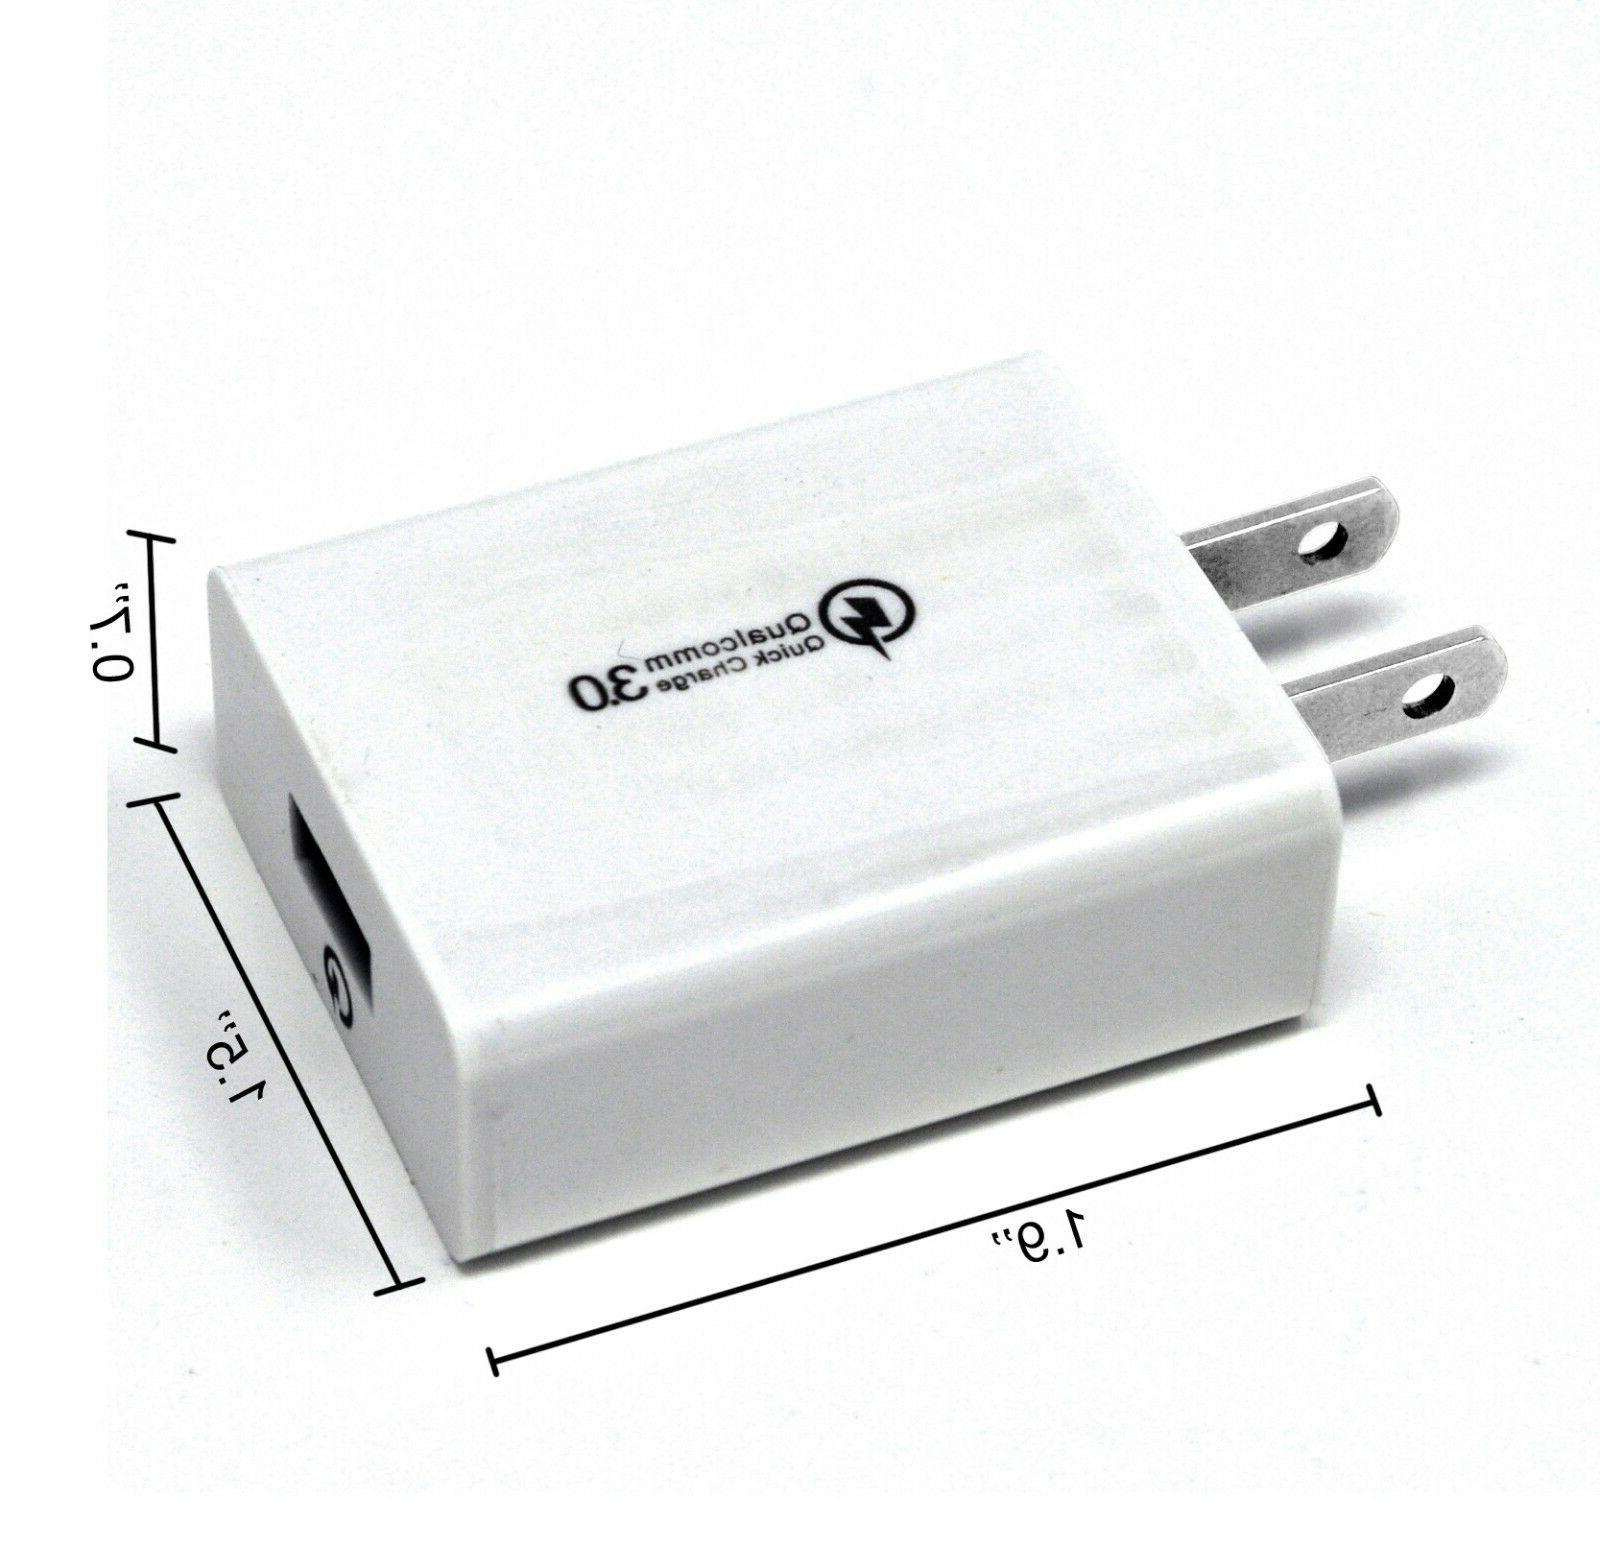 USB Charger for iPhone White